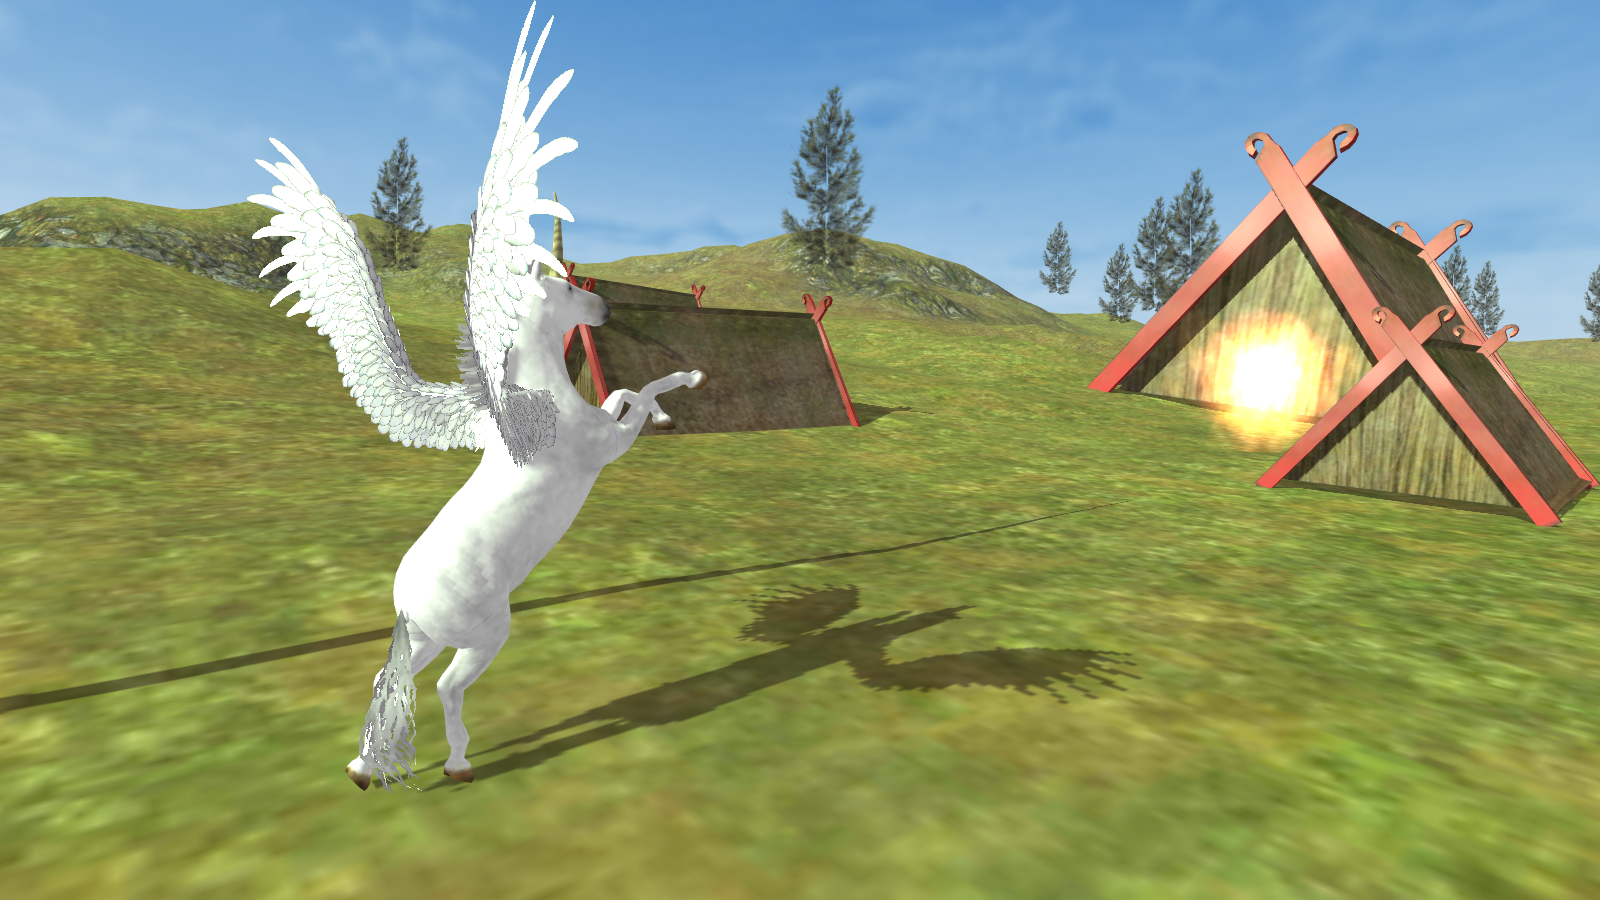 Flying Unicorn Simulator Free 2 APK Download Android Simulation Games